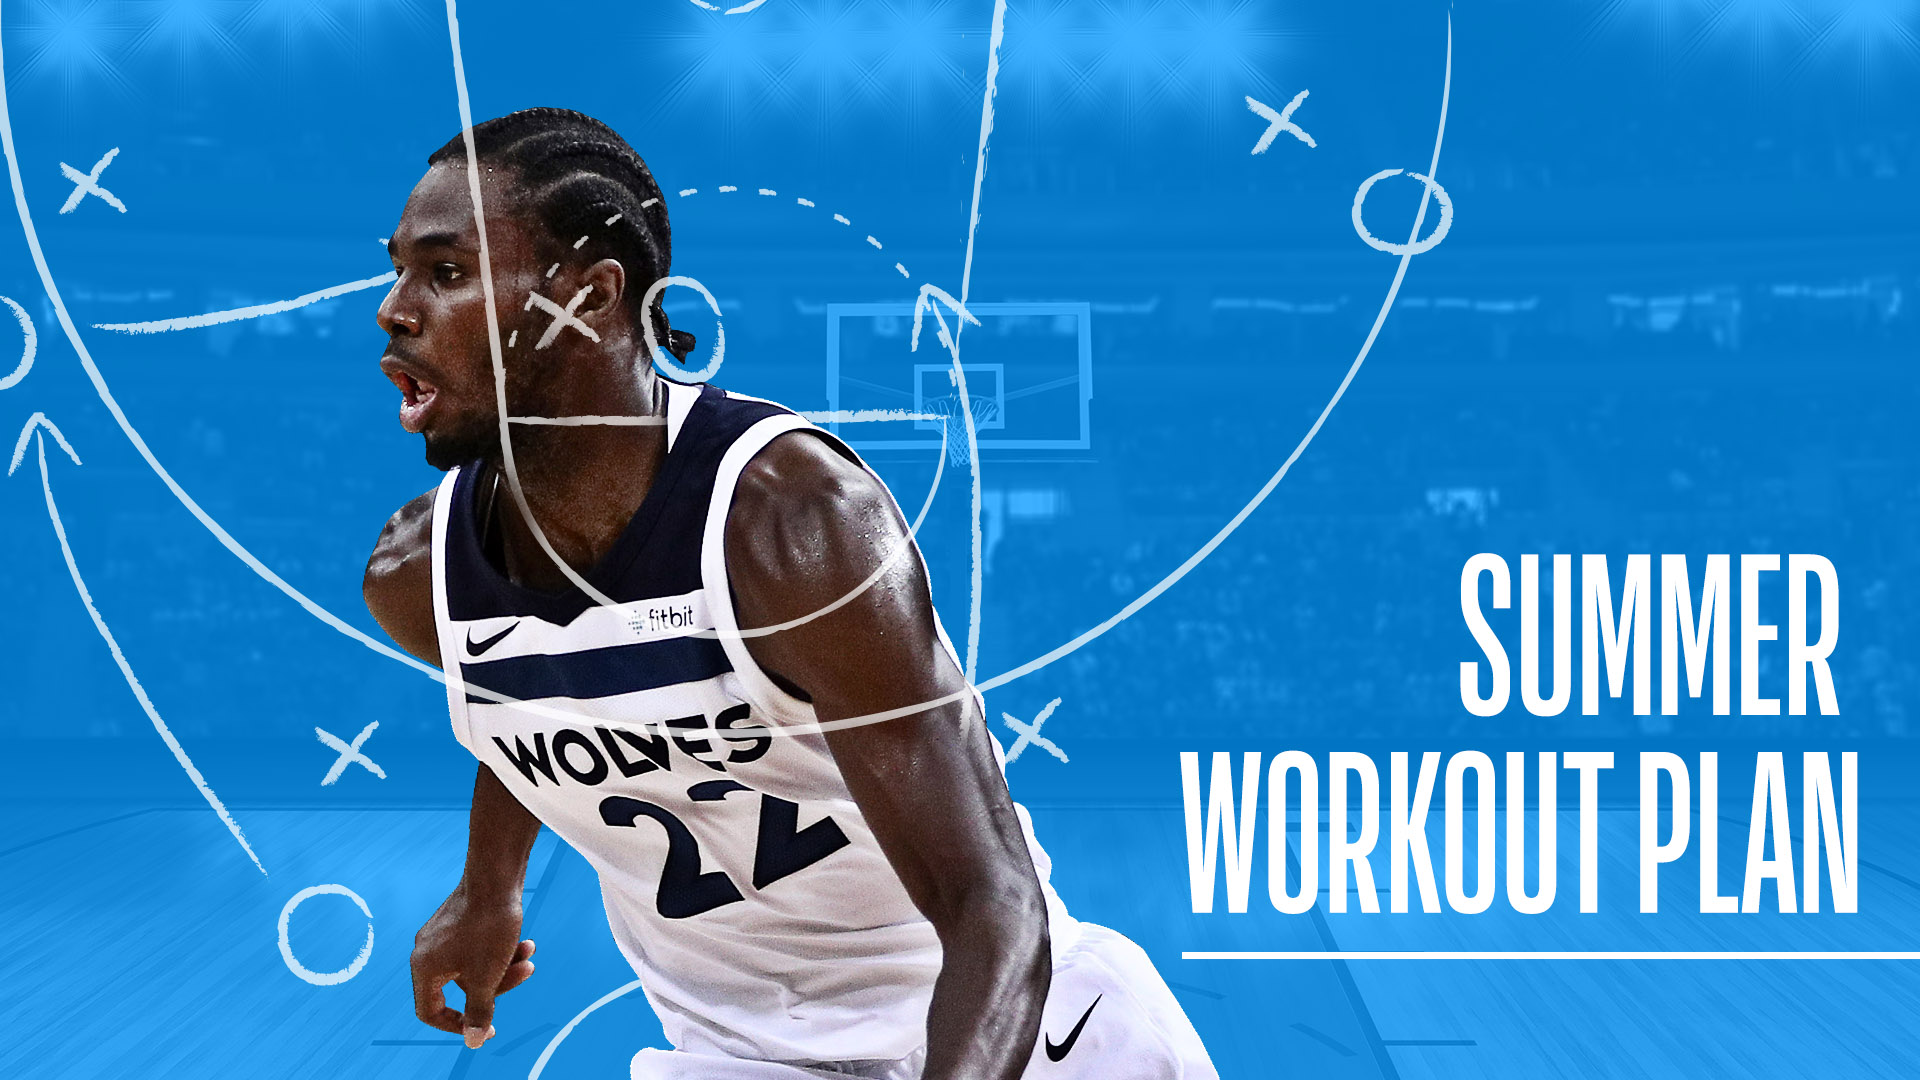 Summer Workout Plan: How Andrew Wiggins can get his ...